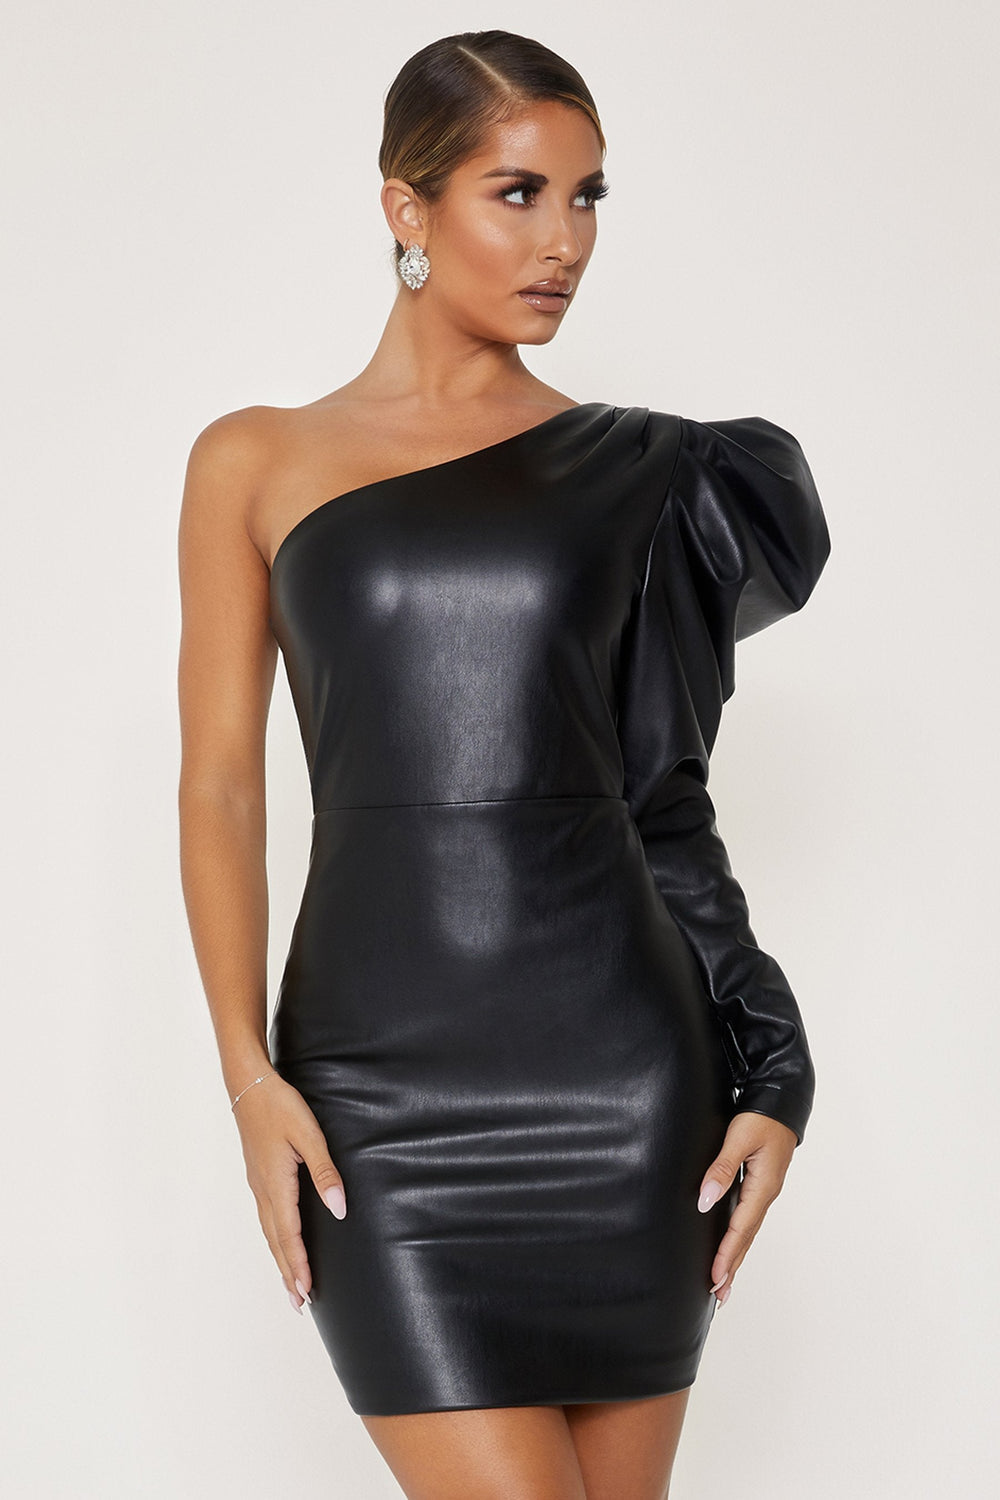 Ataya Leatherette One Shoulder Puff Sleeve Dress - Black - MESHKI ?id=12803595108427